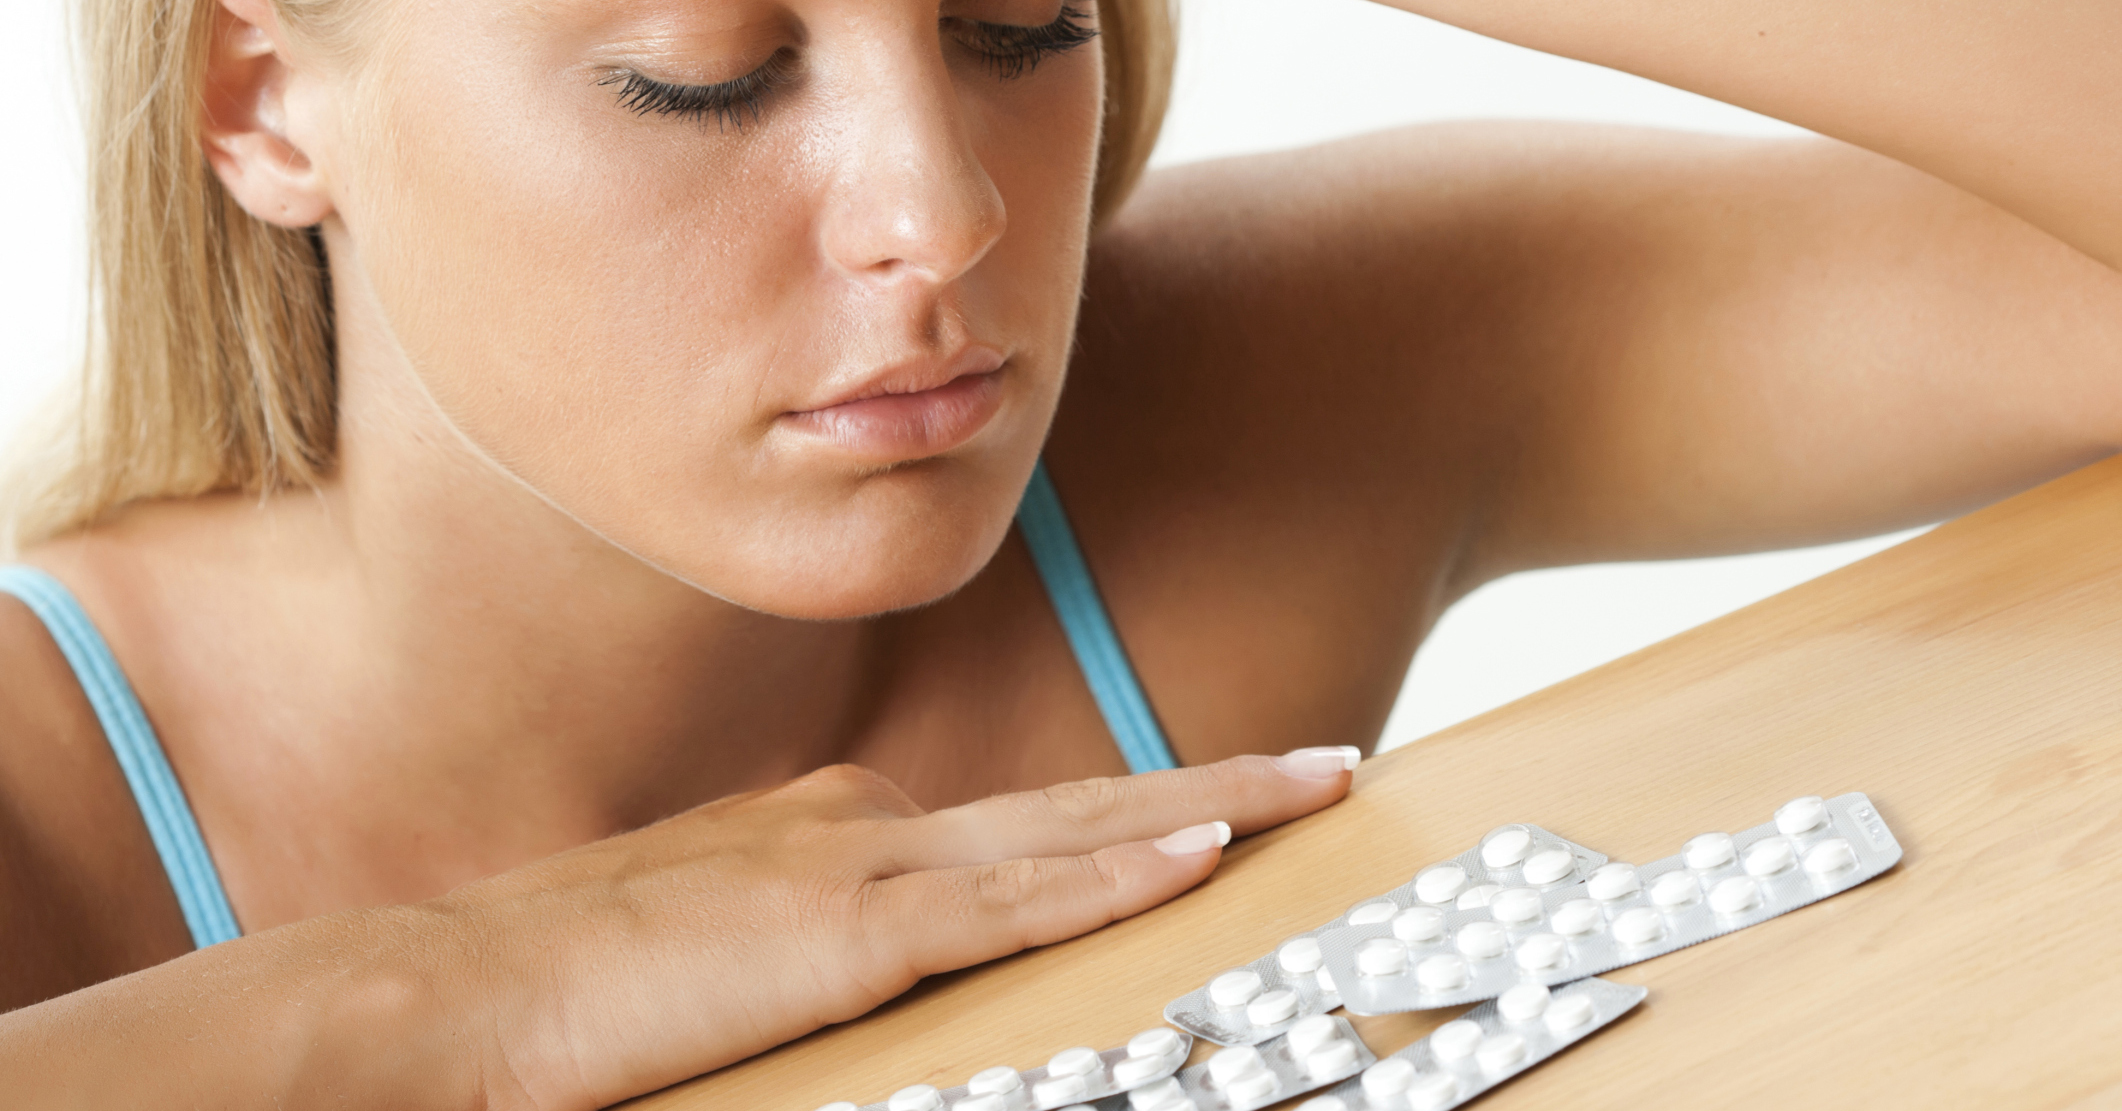 how to get free birth control pills without insurance